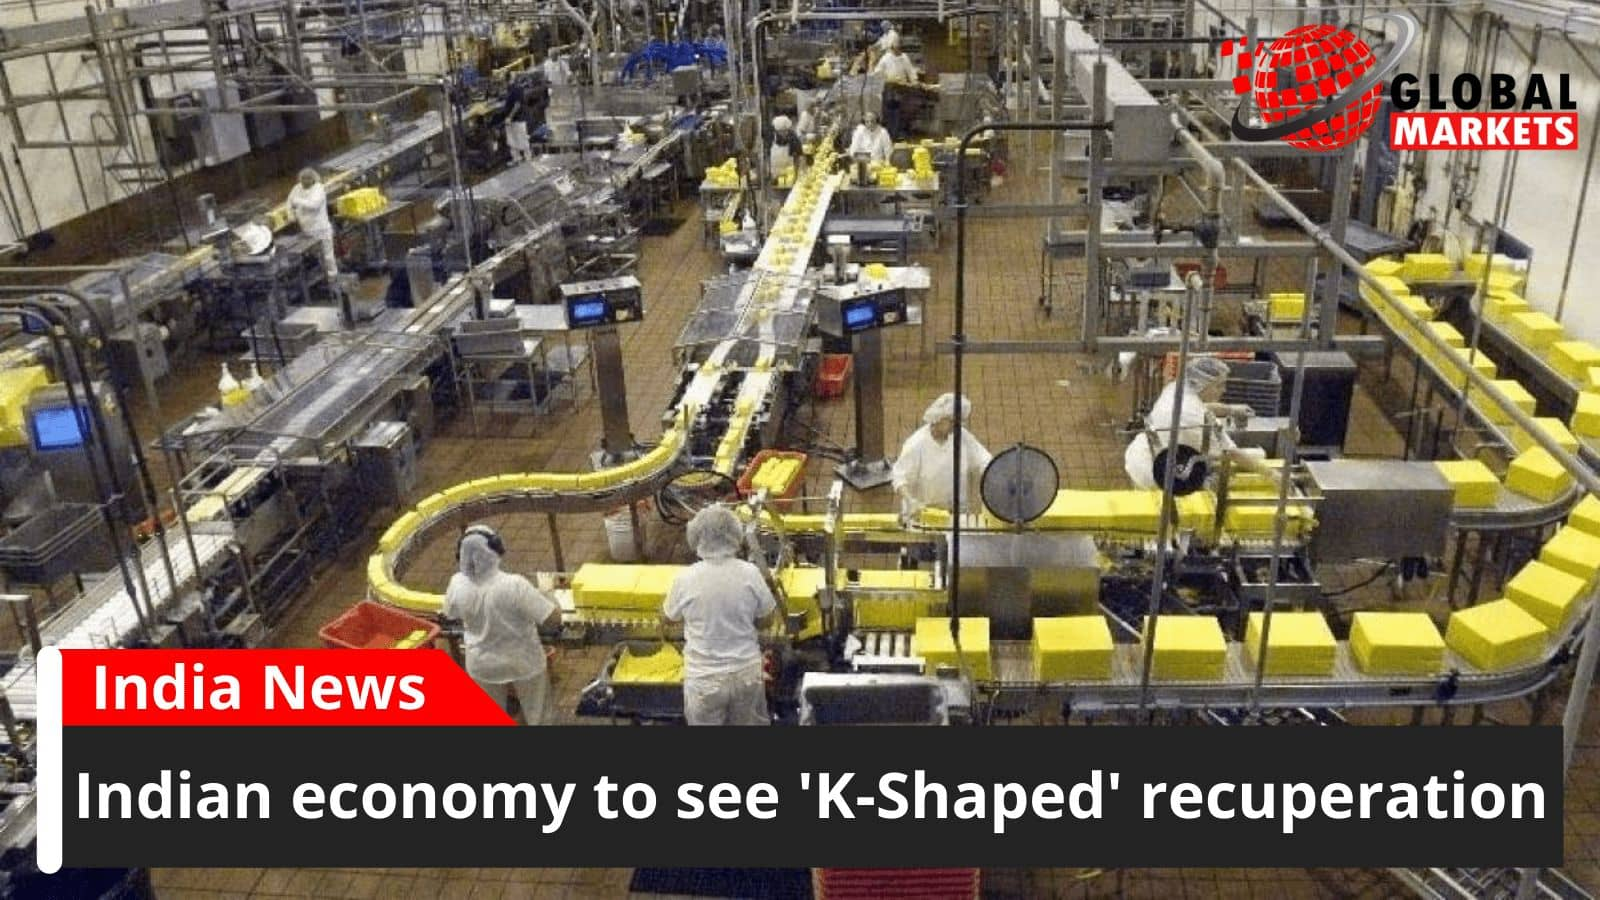 Indian economy to see 'K-Shaped' recuperation